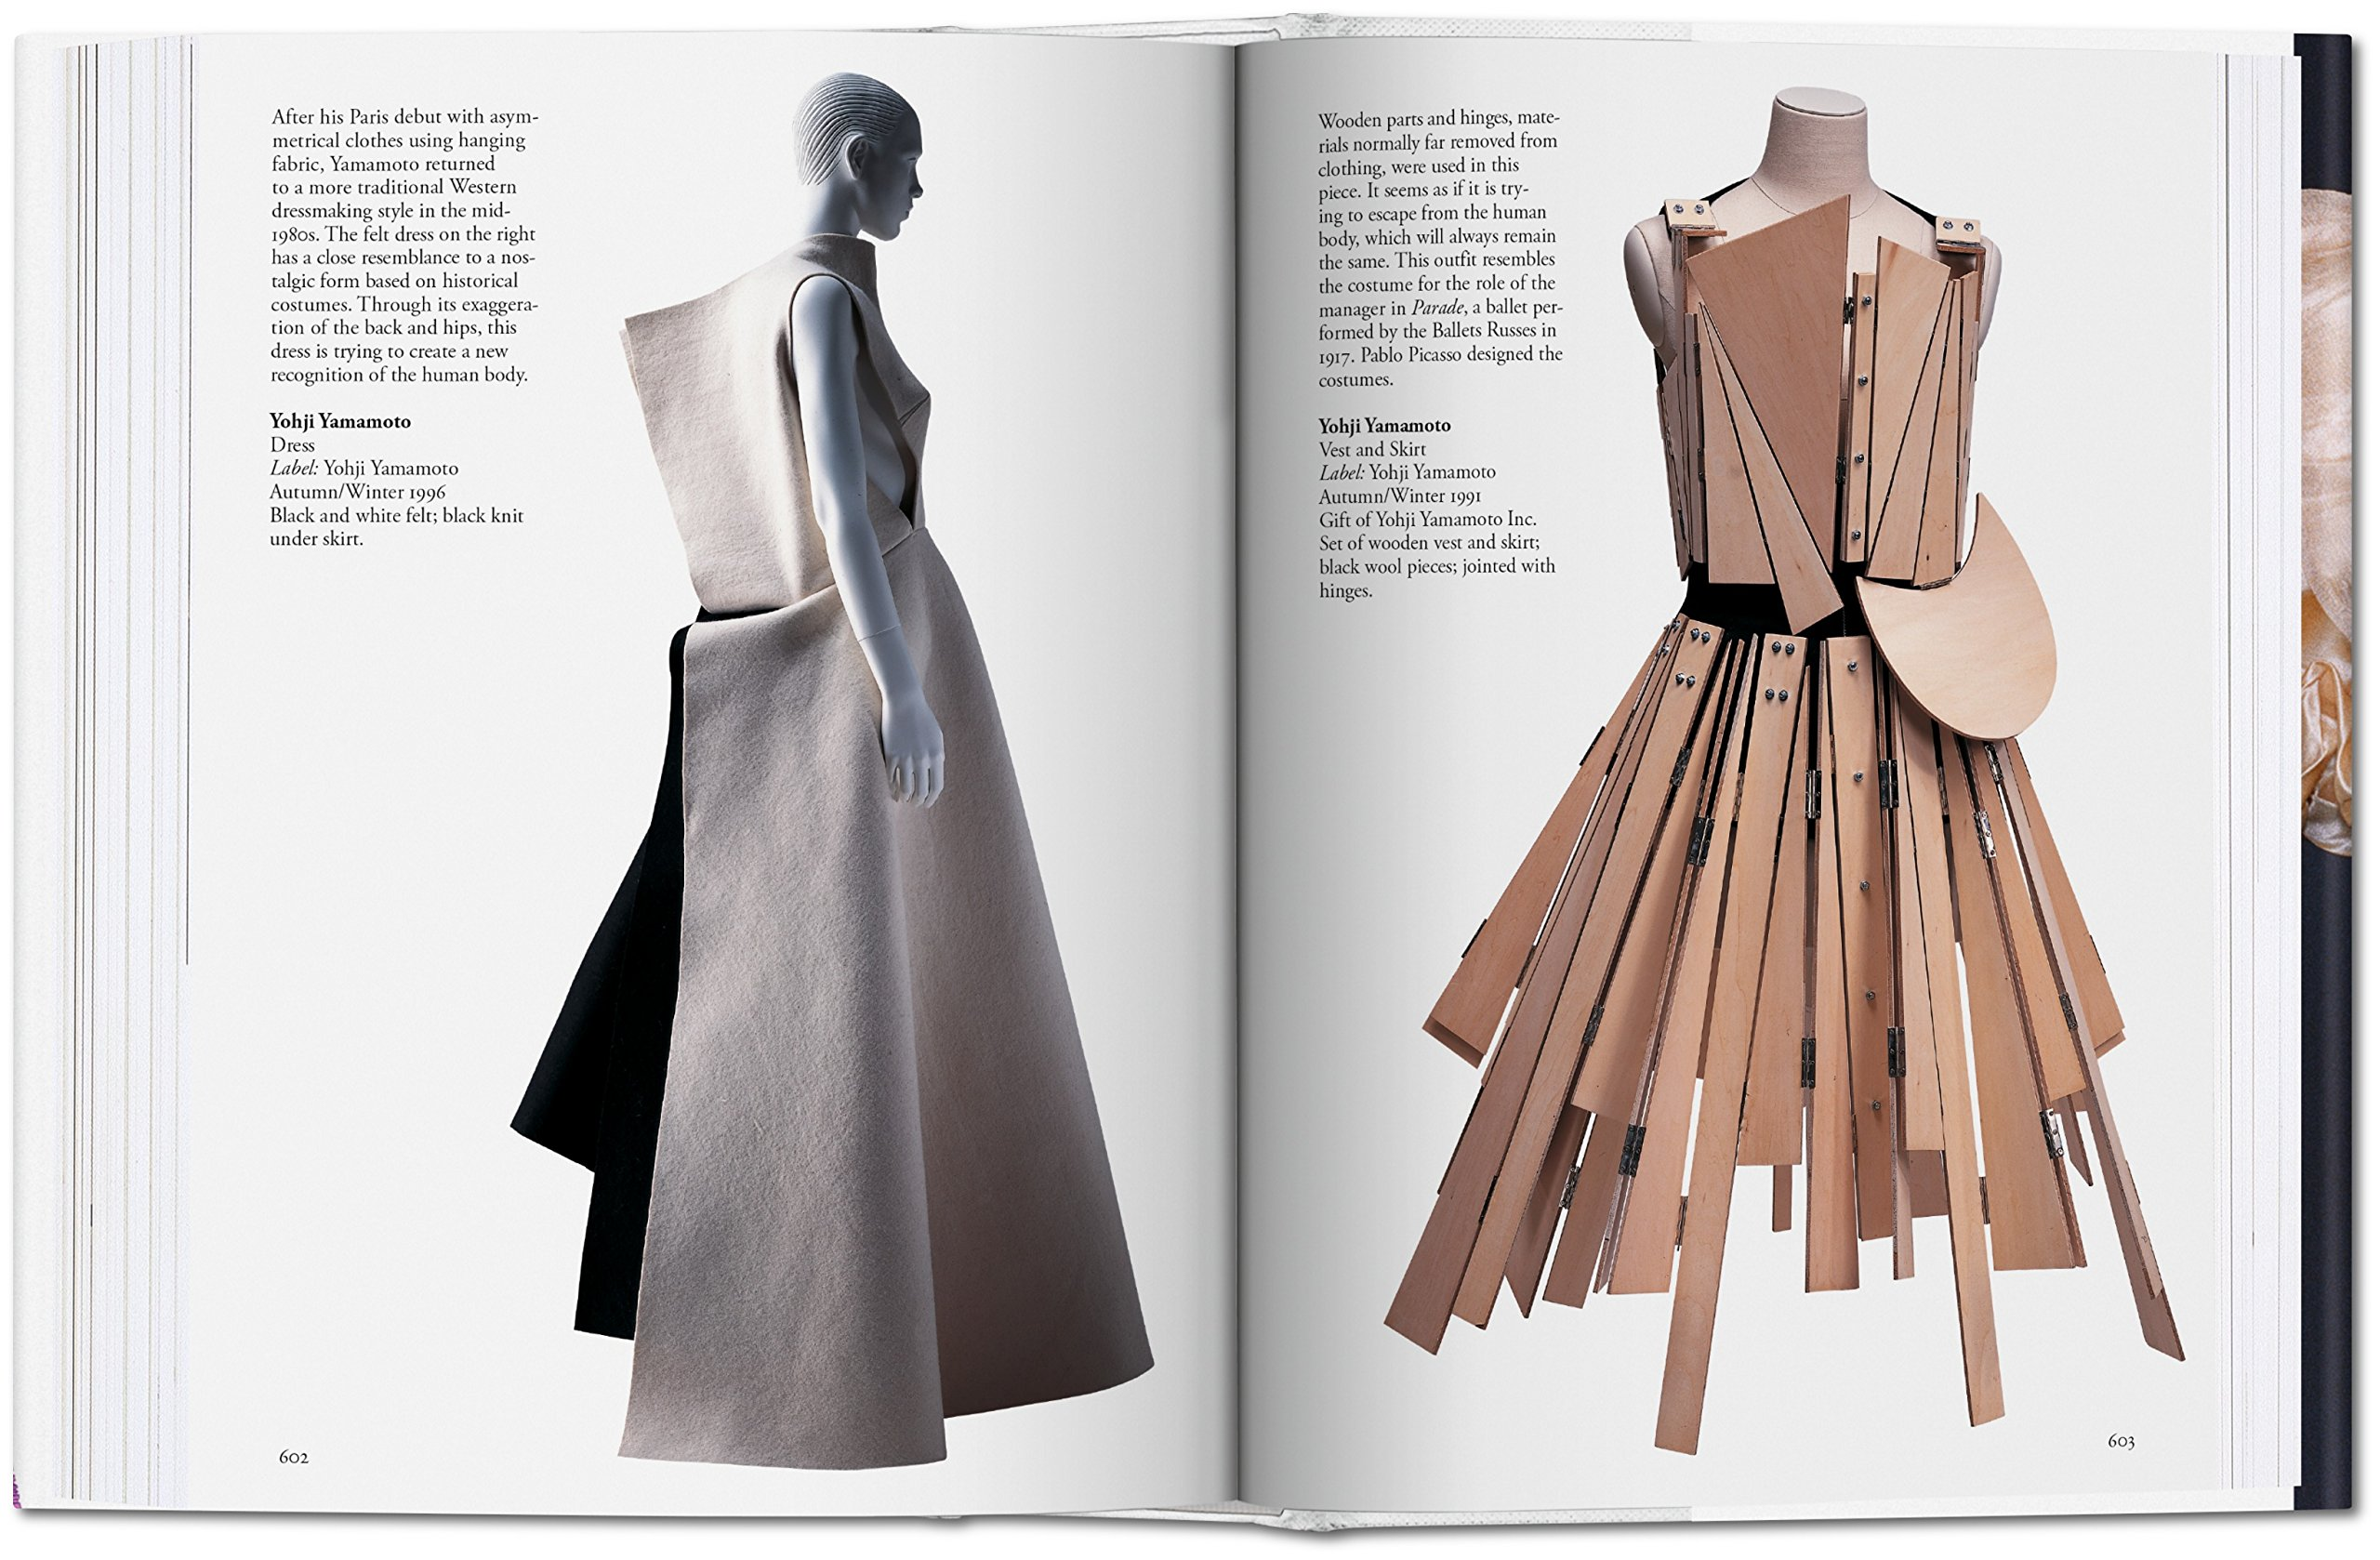 Fashion a history from the 18th to the 20th century kyoto costume fashion a history from the 18th to the 20th century kyoto costume institute 9783836557191 amazon books fandeluxe Choice Image